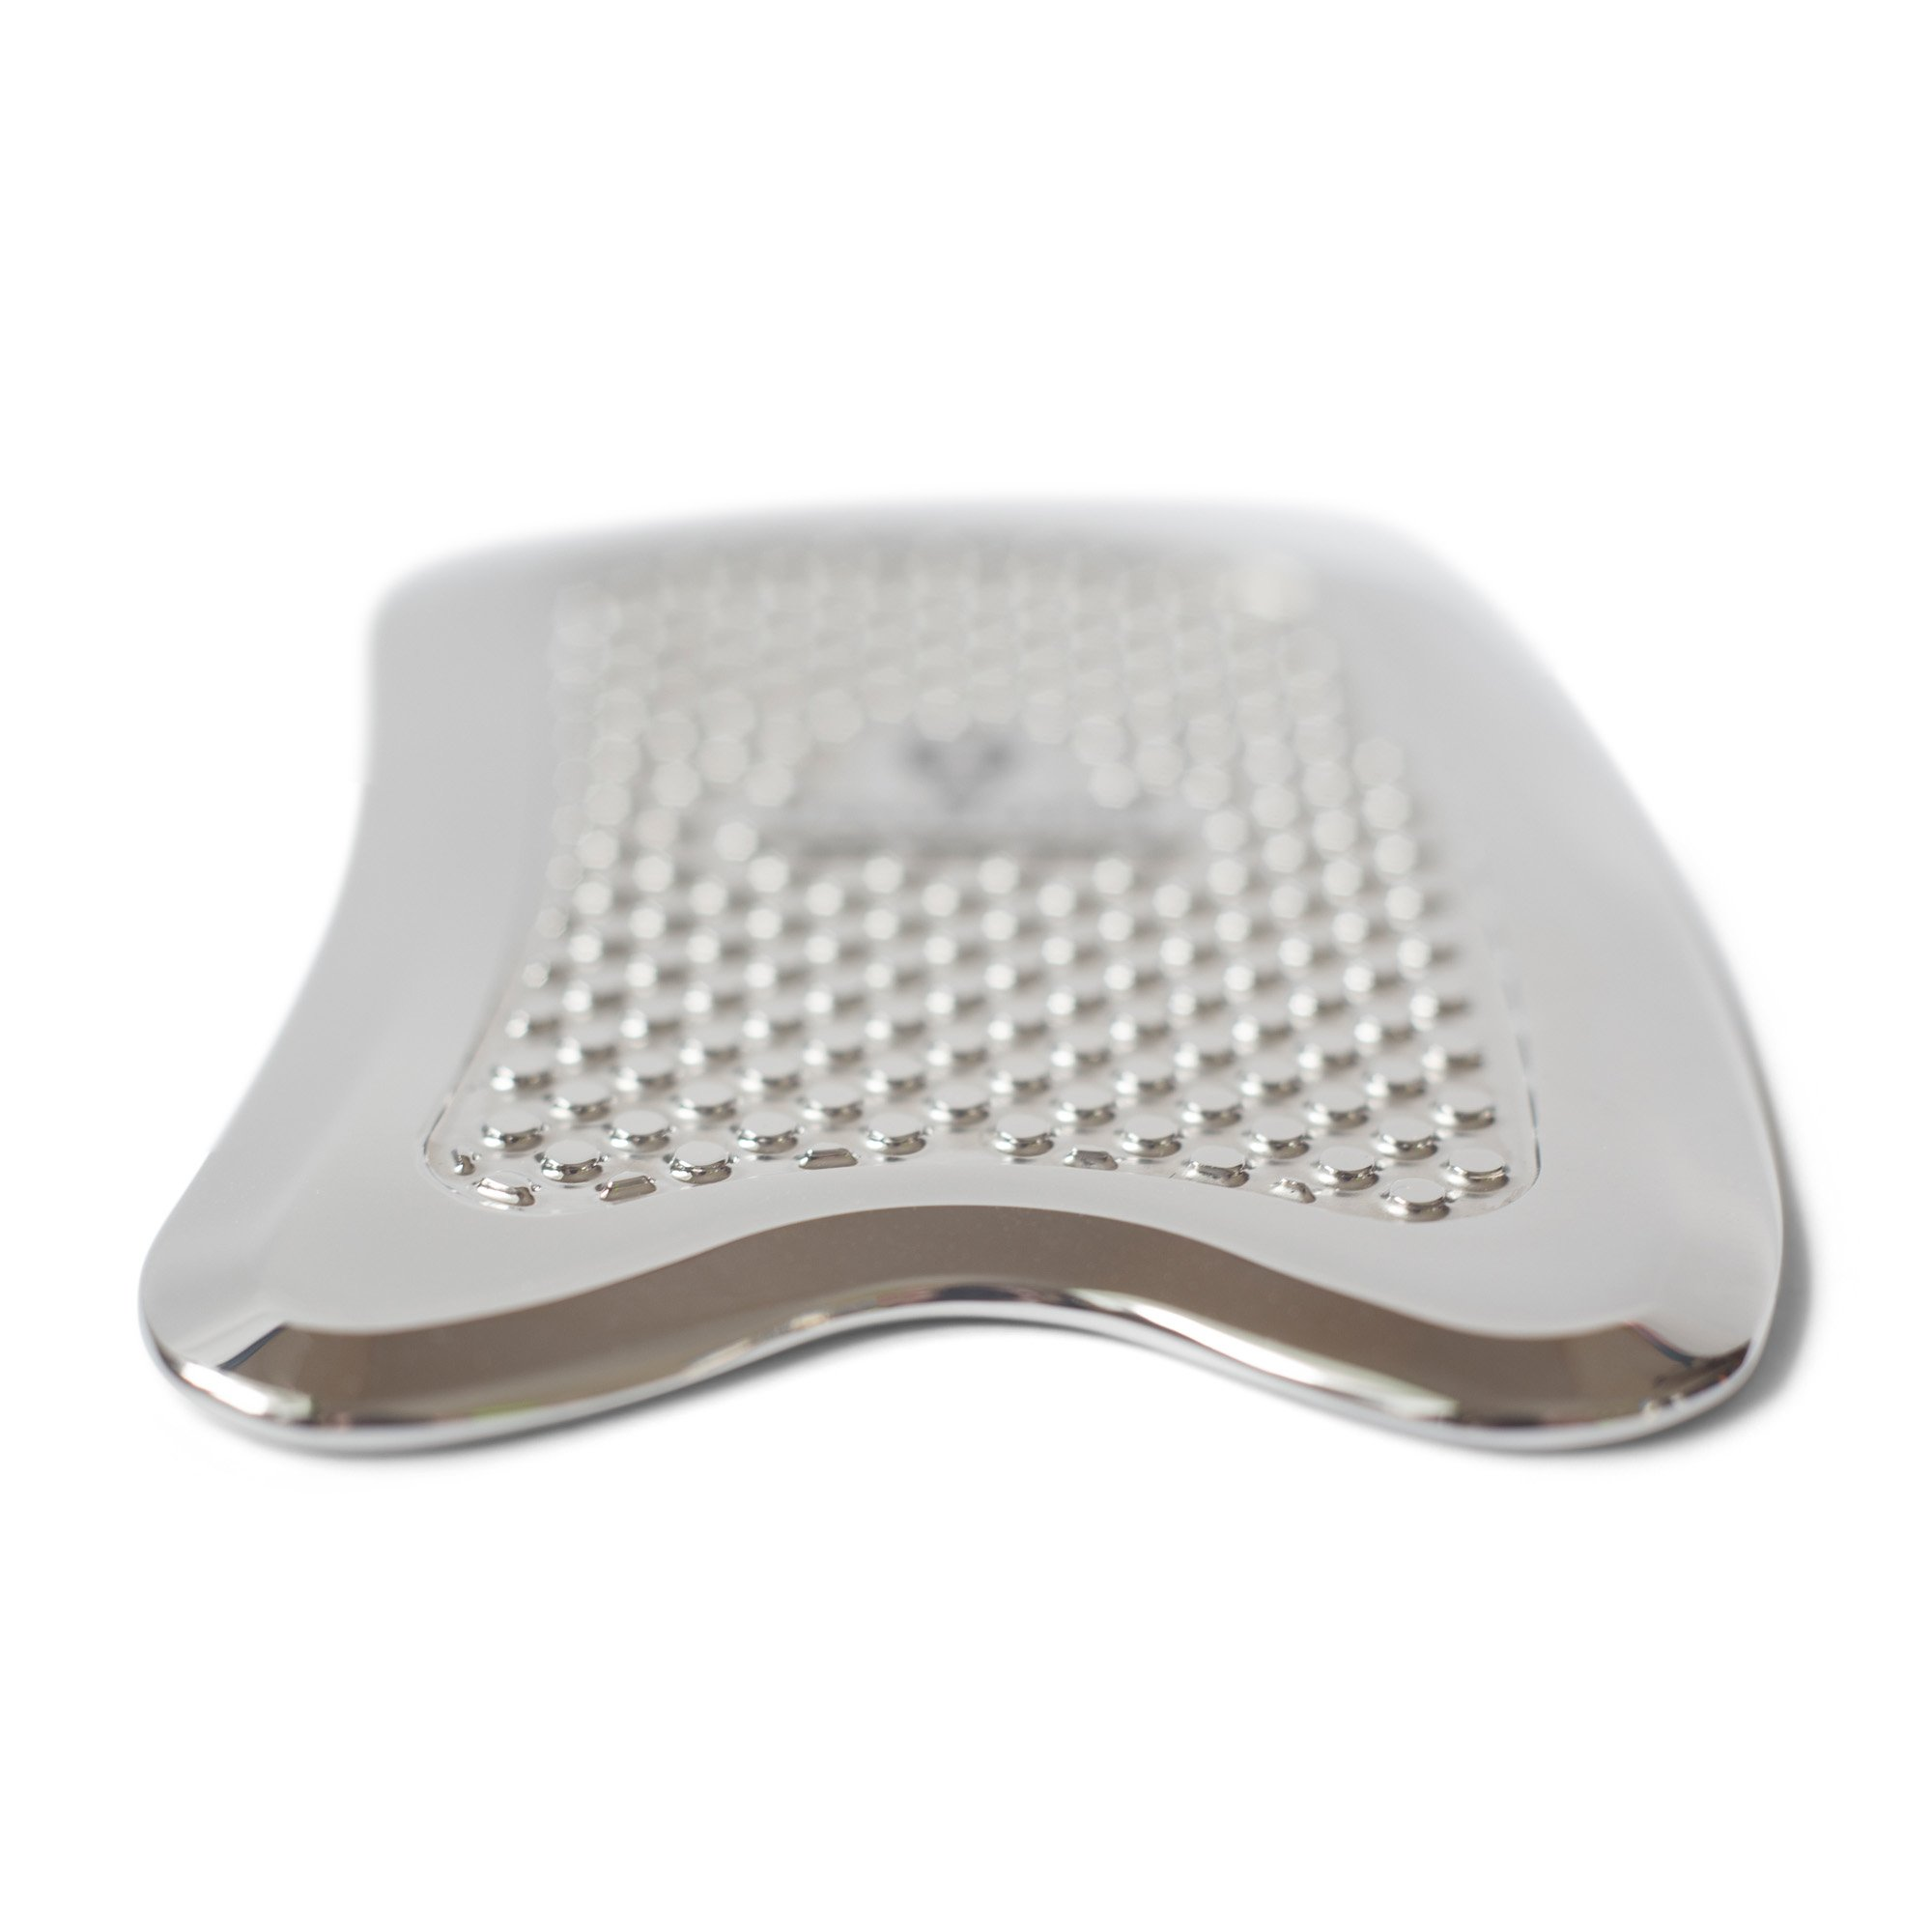 Stainless Steel Graston, IASTM Tool - Anti Slippery - Gua Sha Scraping Massage Tool